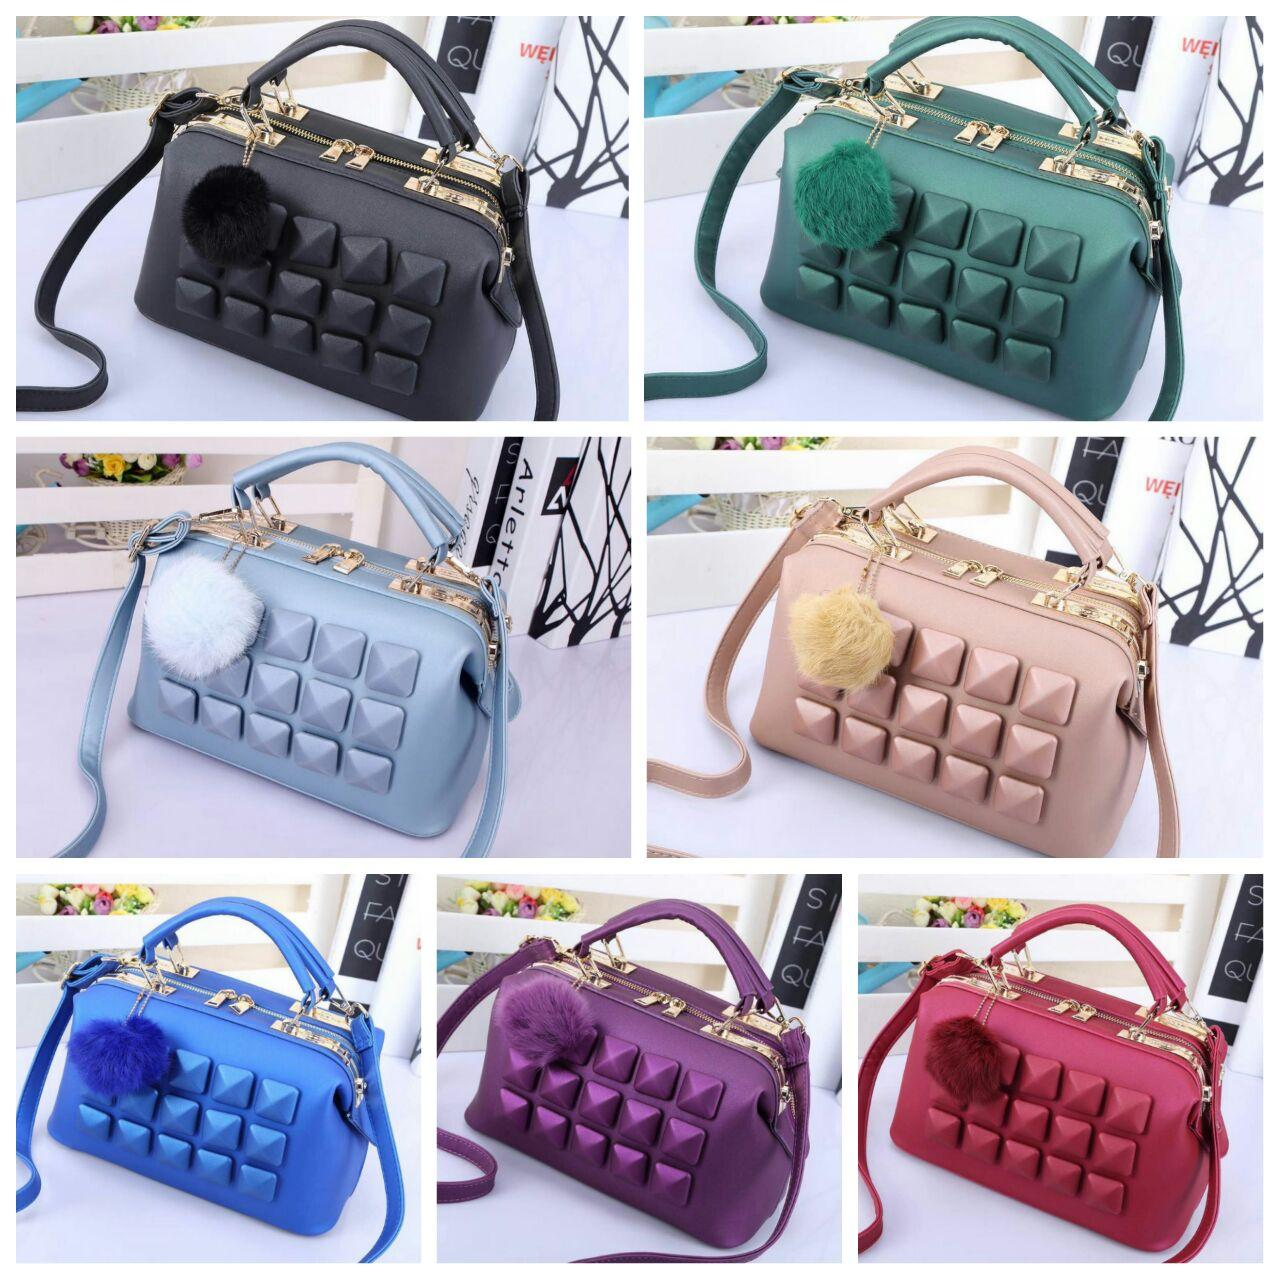 Fashion Jelly Doctor 3298 Fashion Wanita Tas Import Grosir Tas Selempang Ransel Handbag Trendy